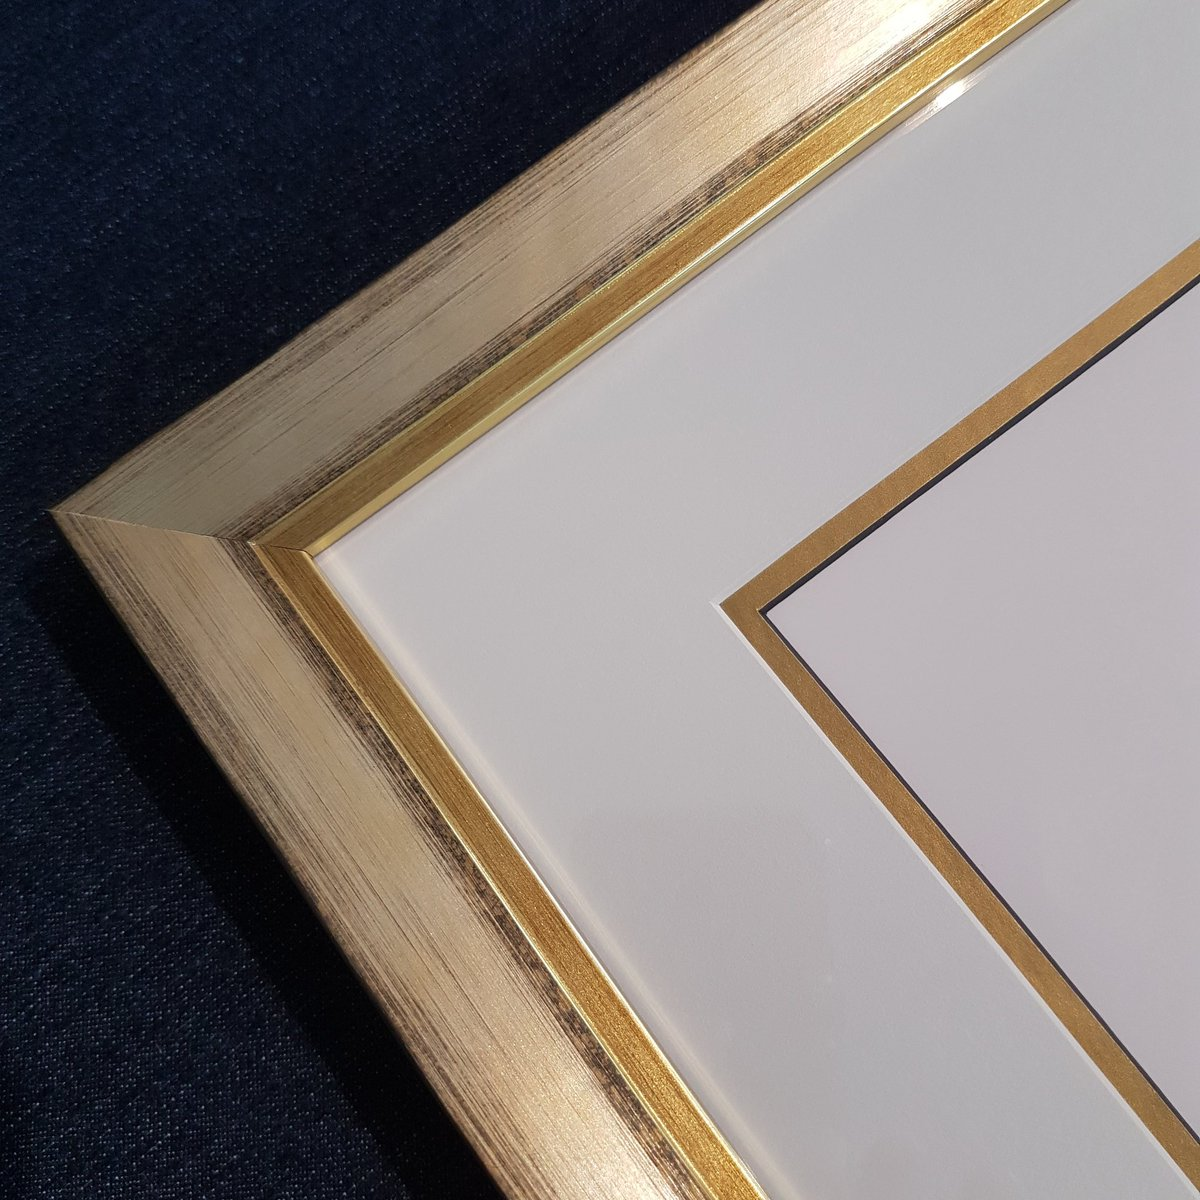 Primed art framing primedframing twitter italian frame gold blackcore mat board conservation glass framing brisbane certificatepicitterabng2ntnoh jeuxipadfo Choice Image